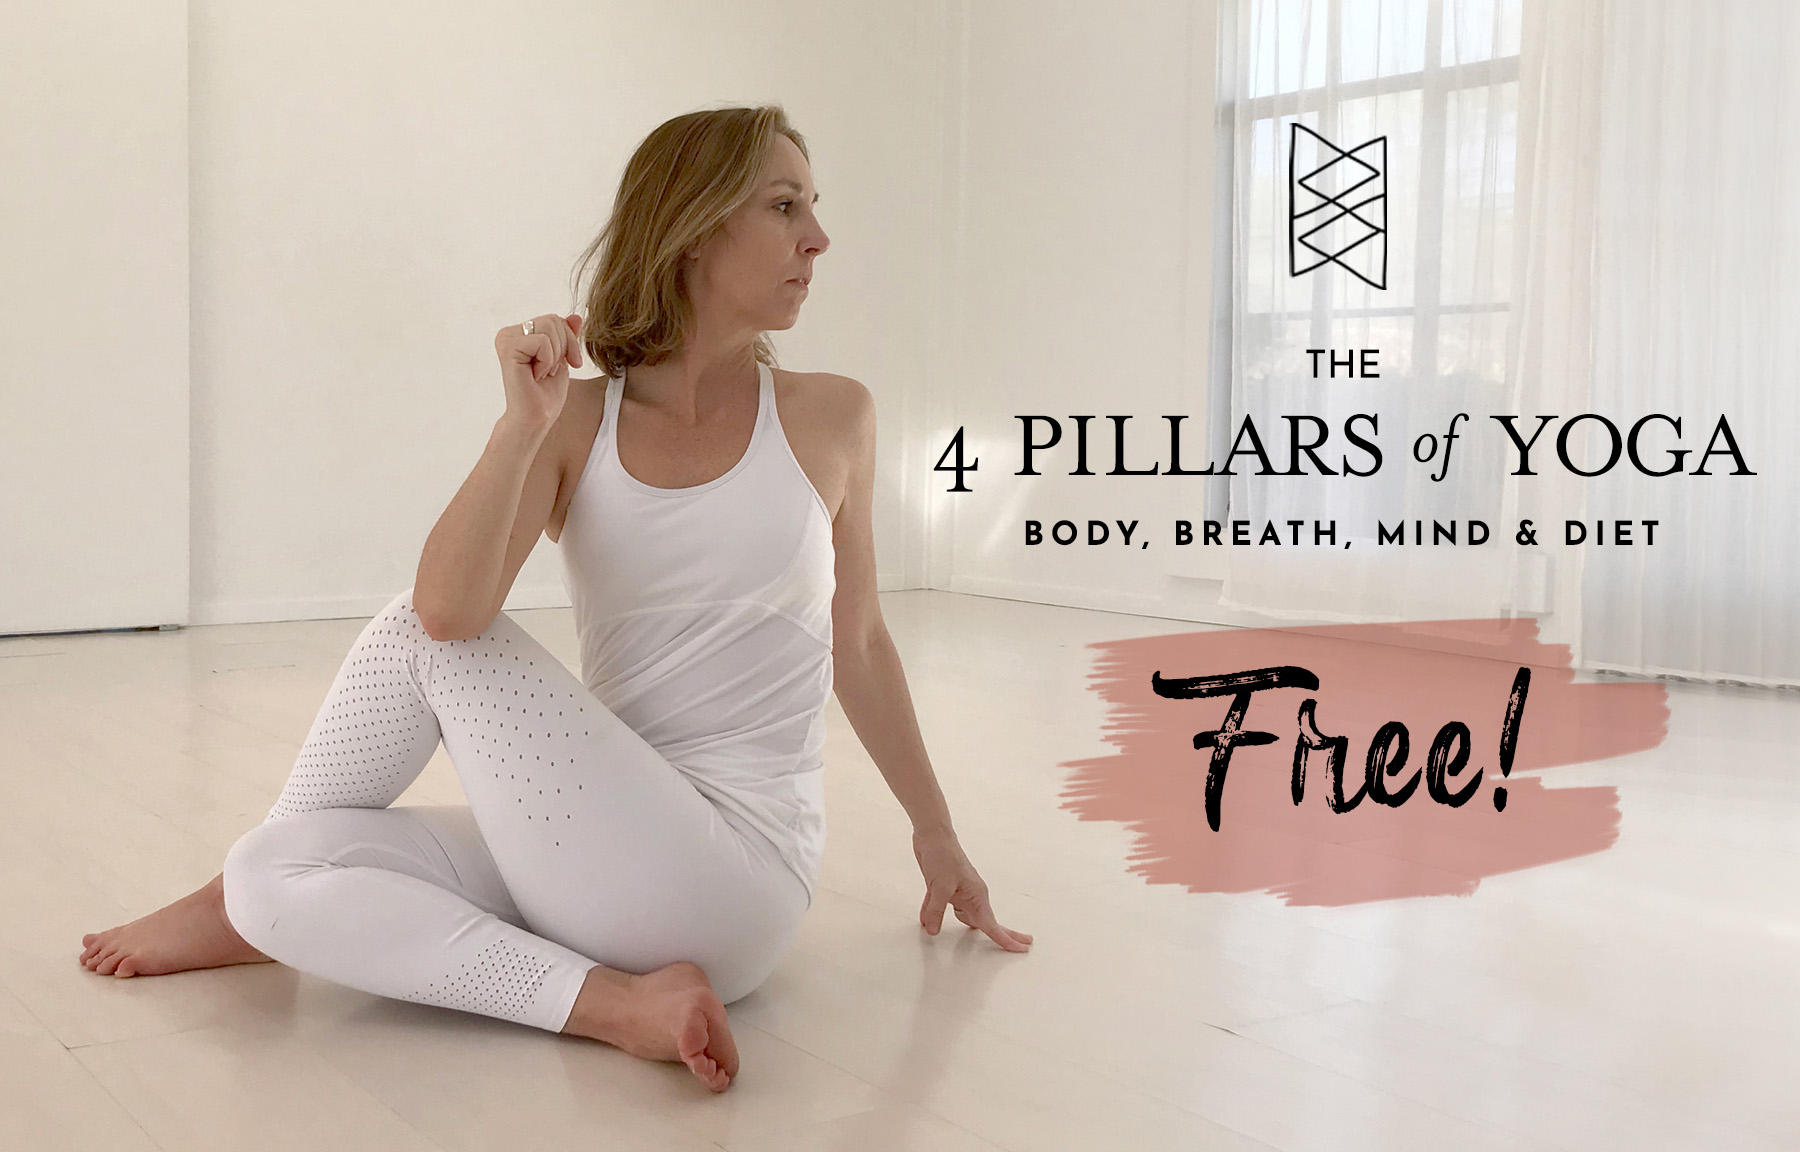 The 4 Pillars of Yoga: Body, Breath, Mind & Diet Free!